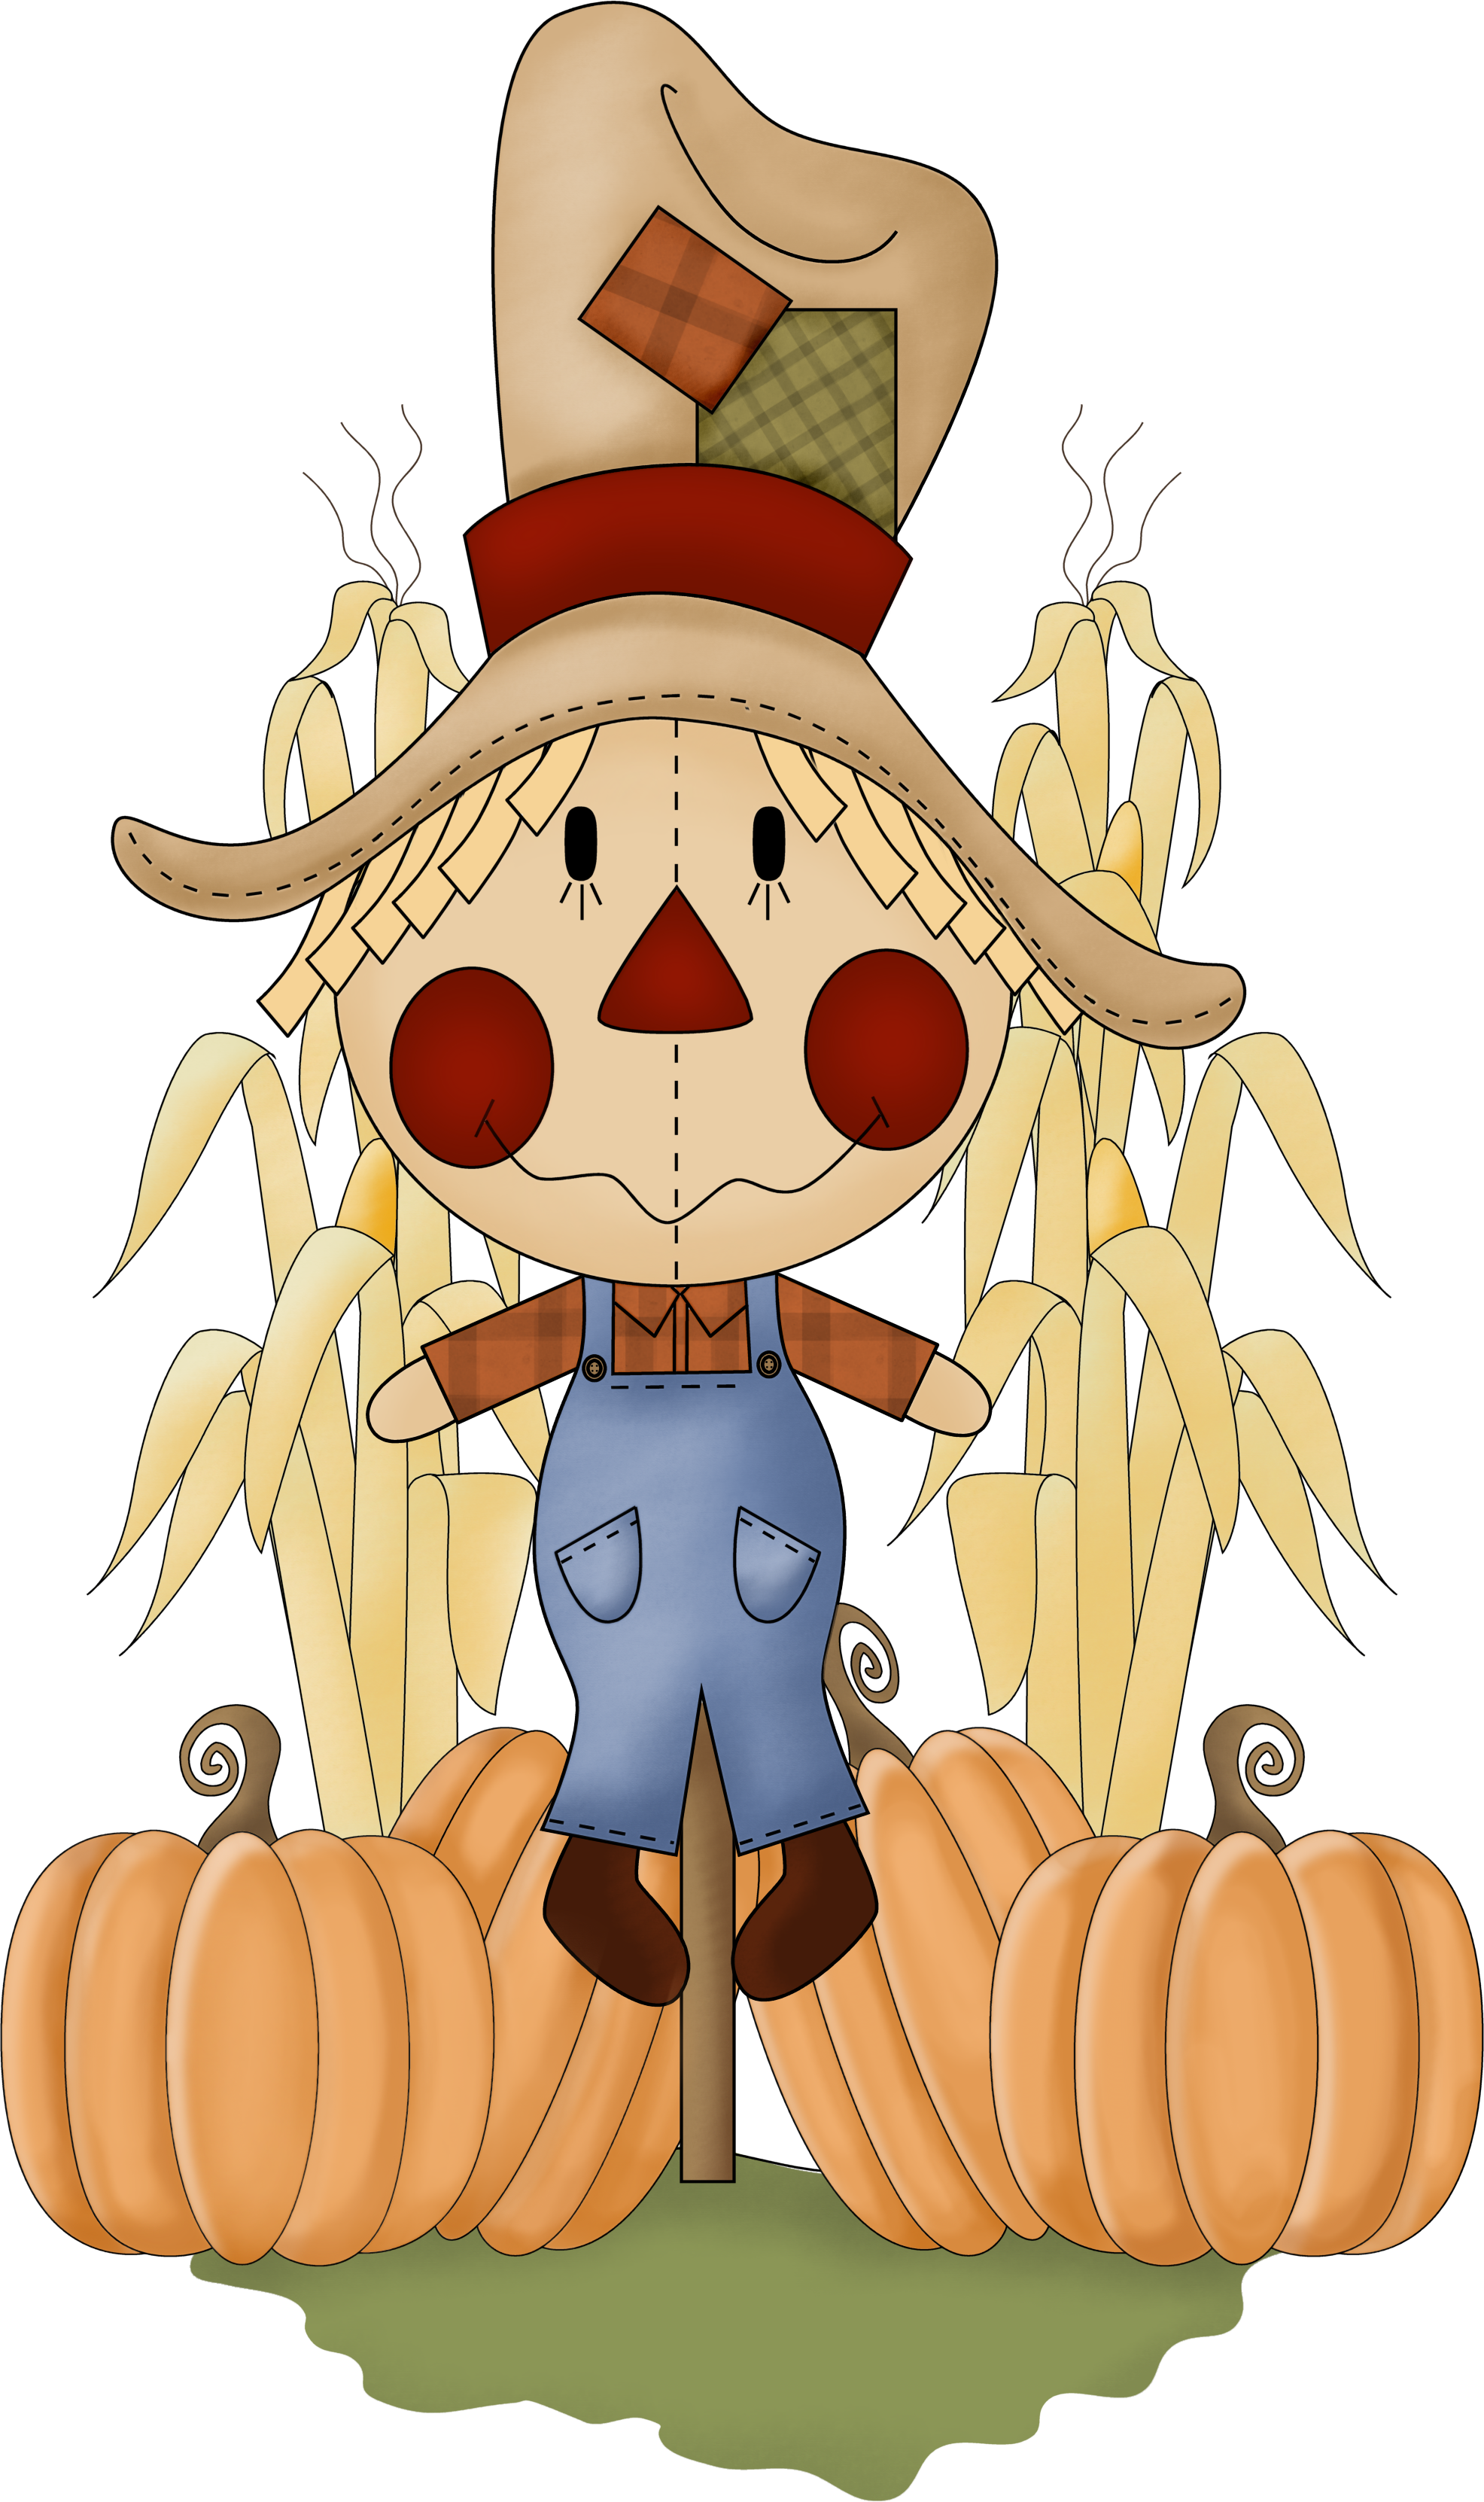 Scarecrow clip art fall. Kite clipart autumn